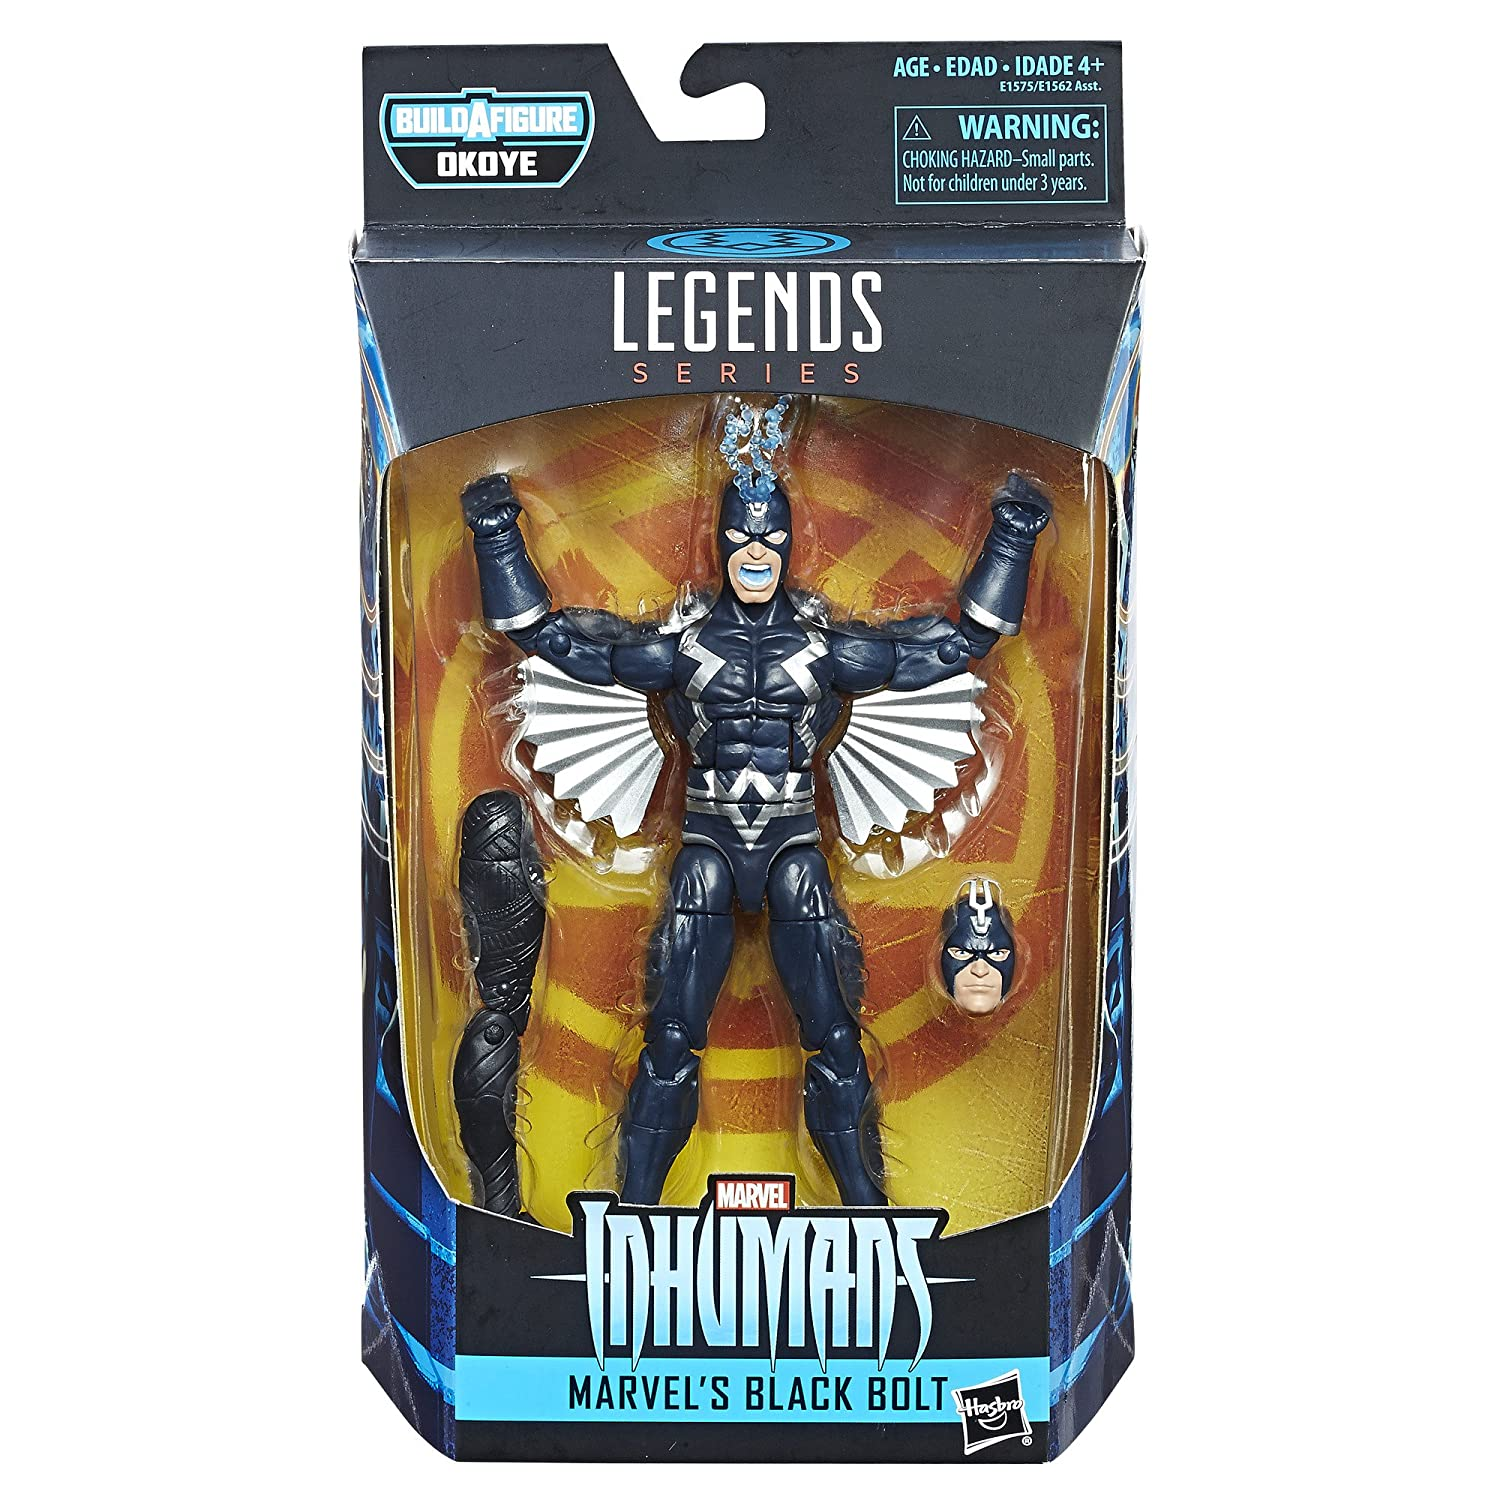 6-inch Hasbro E1575 Marvel Black Panther Legends Series Black Bolt